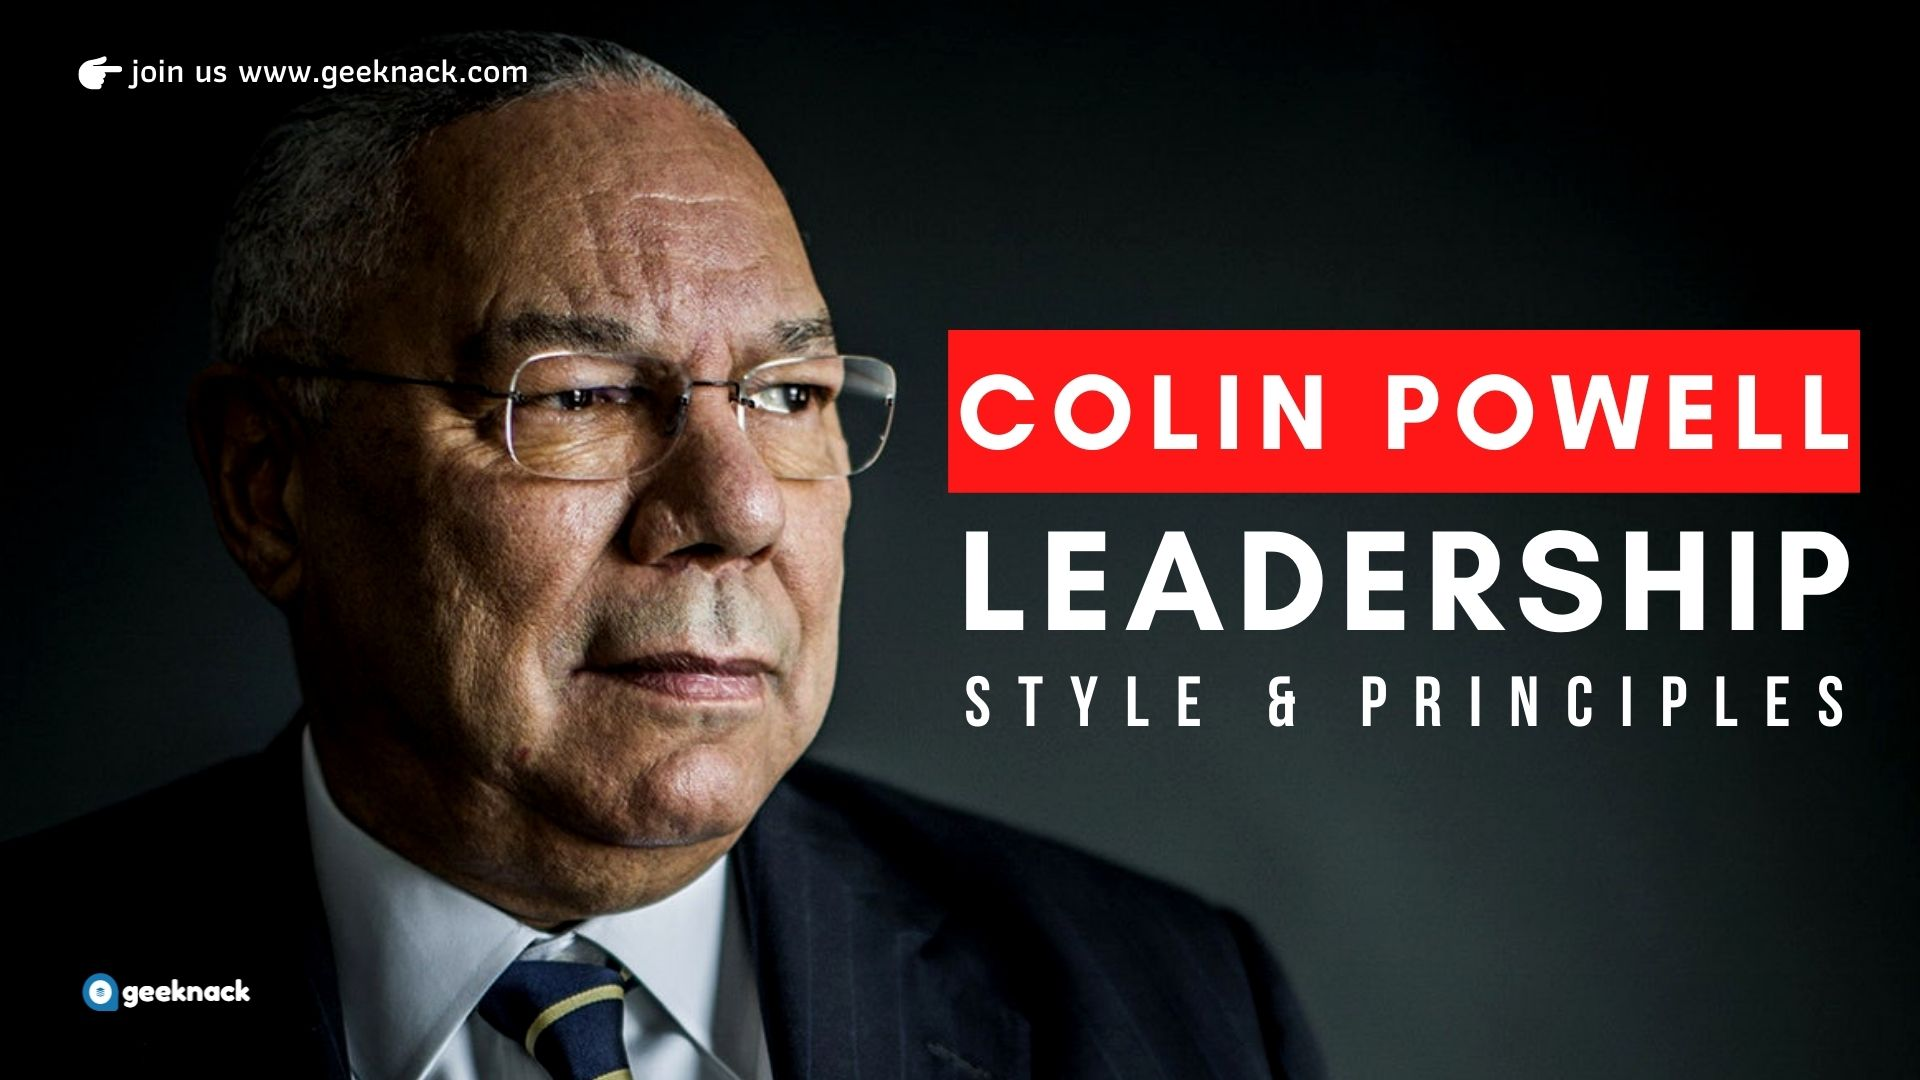 Colin Powell - Leadership Style & Principles